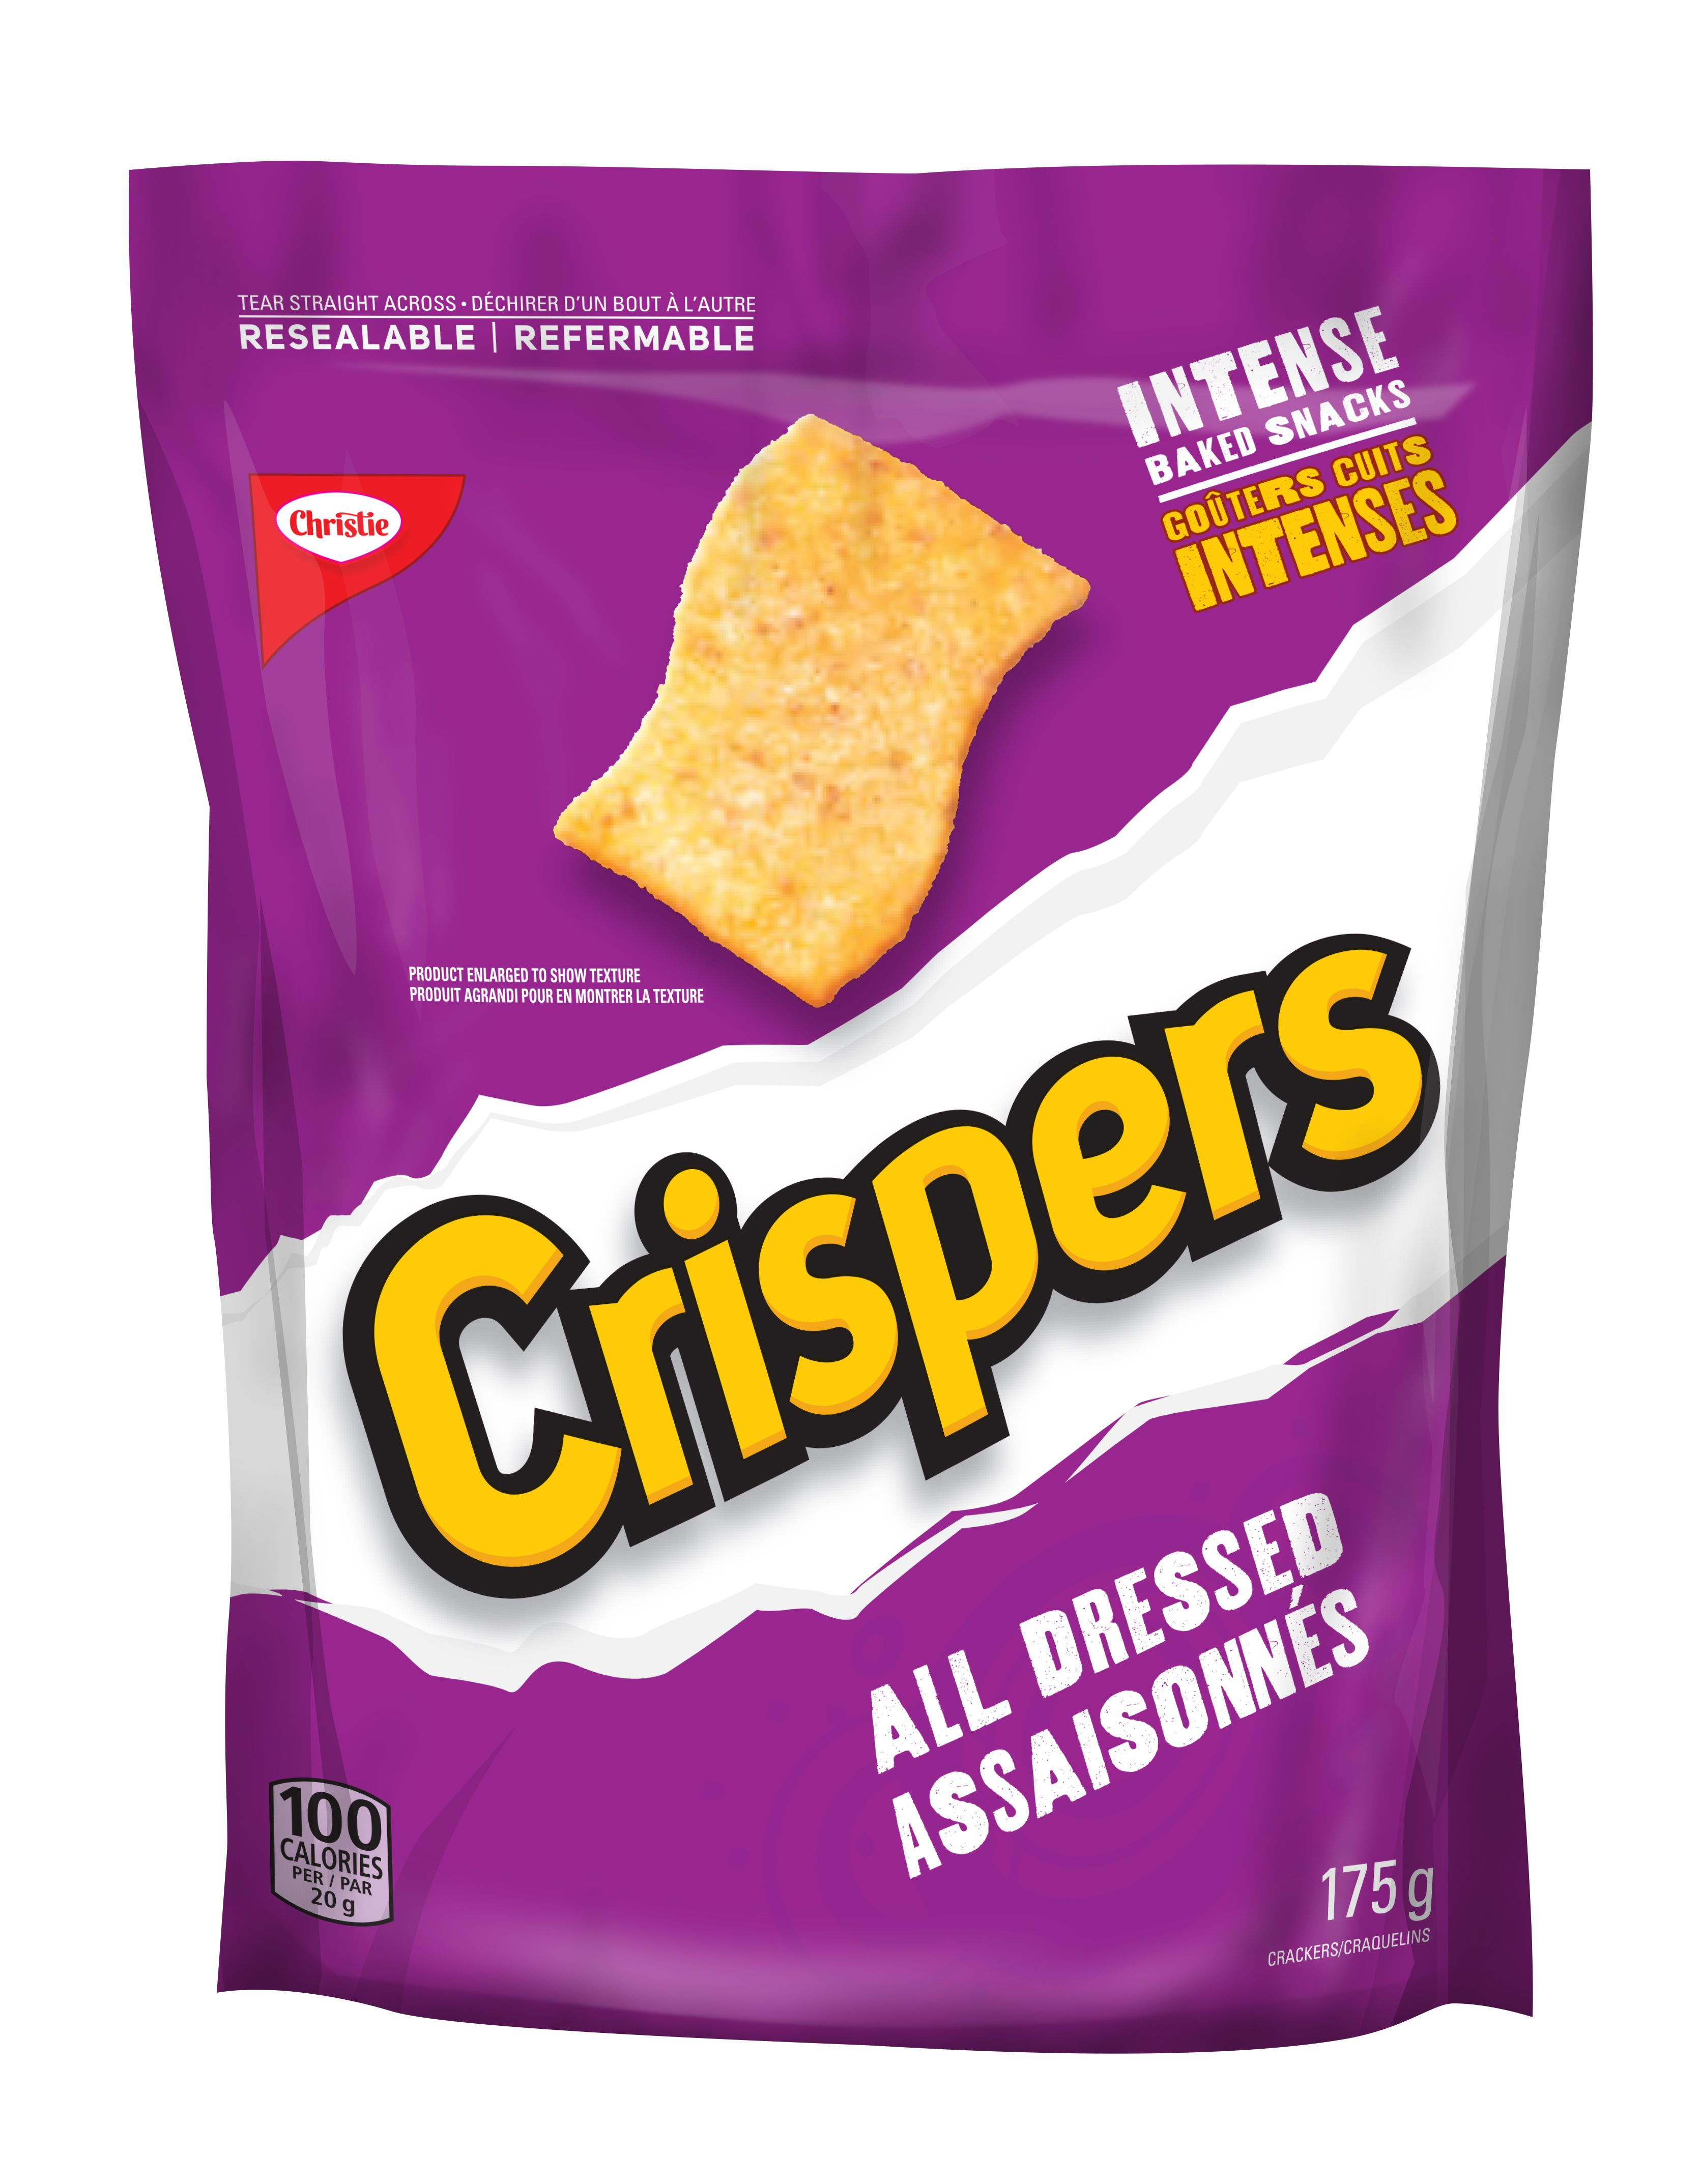 CRISPERS  ALL DRESSED 175 GRM